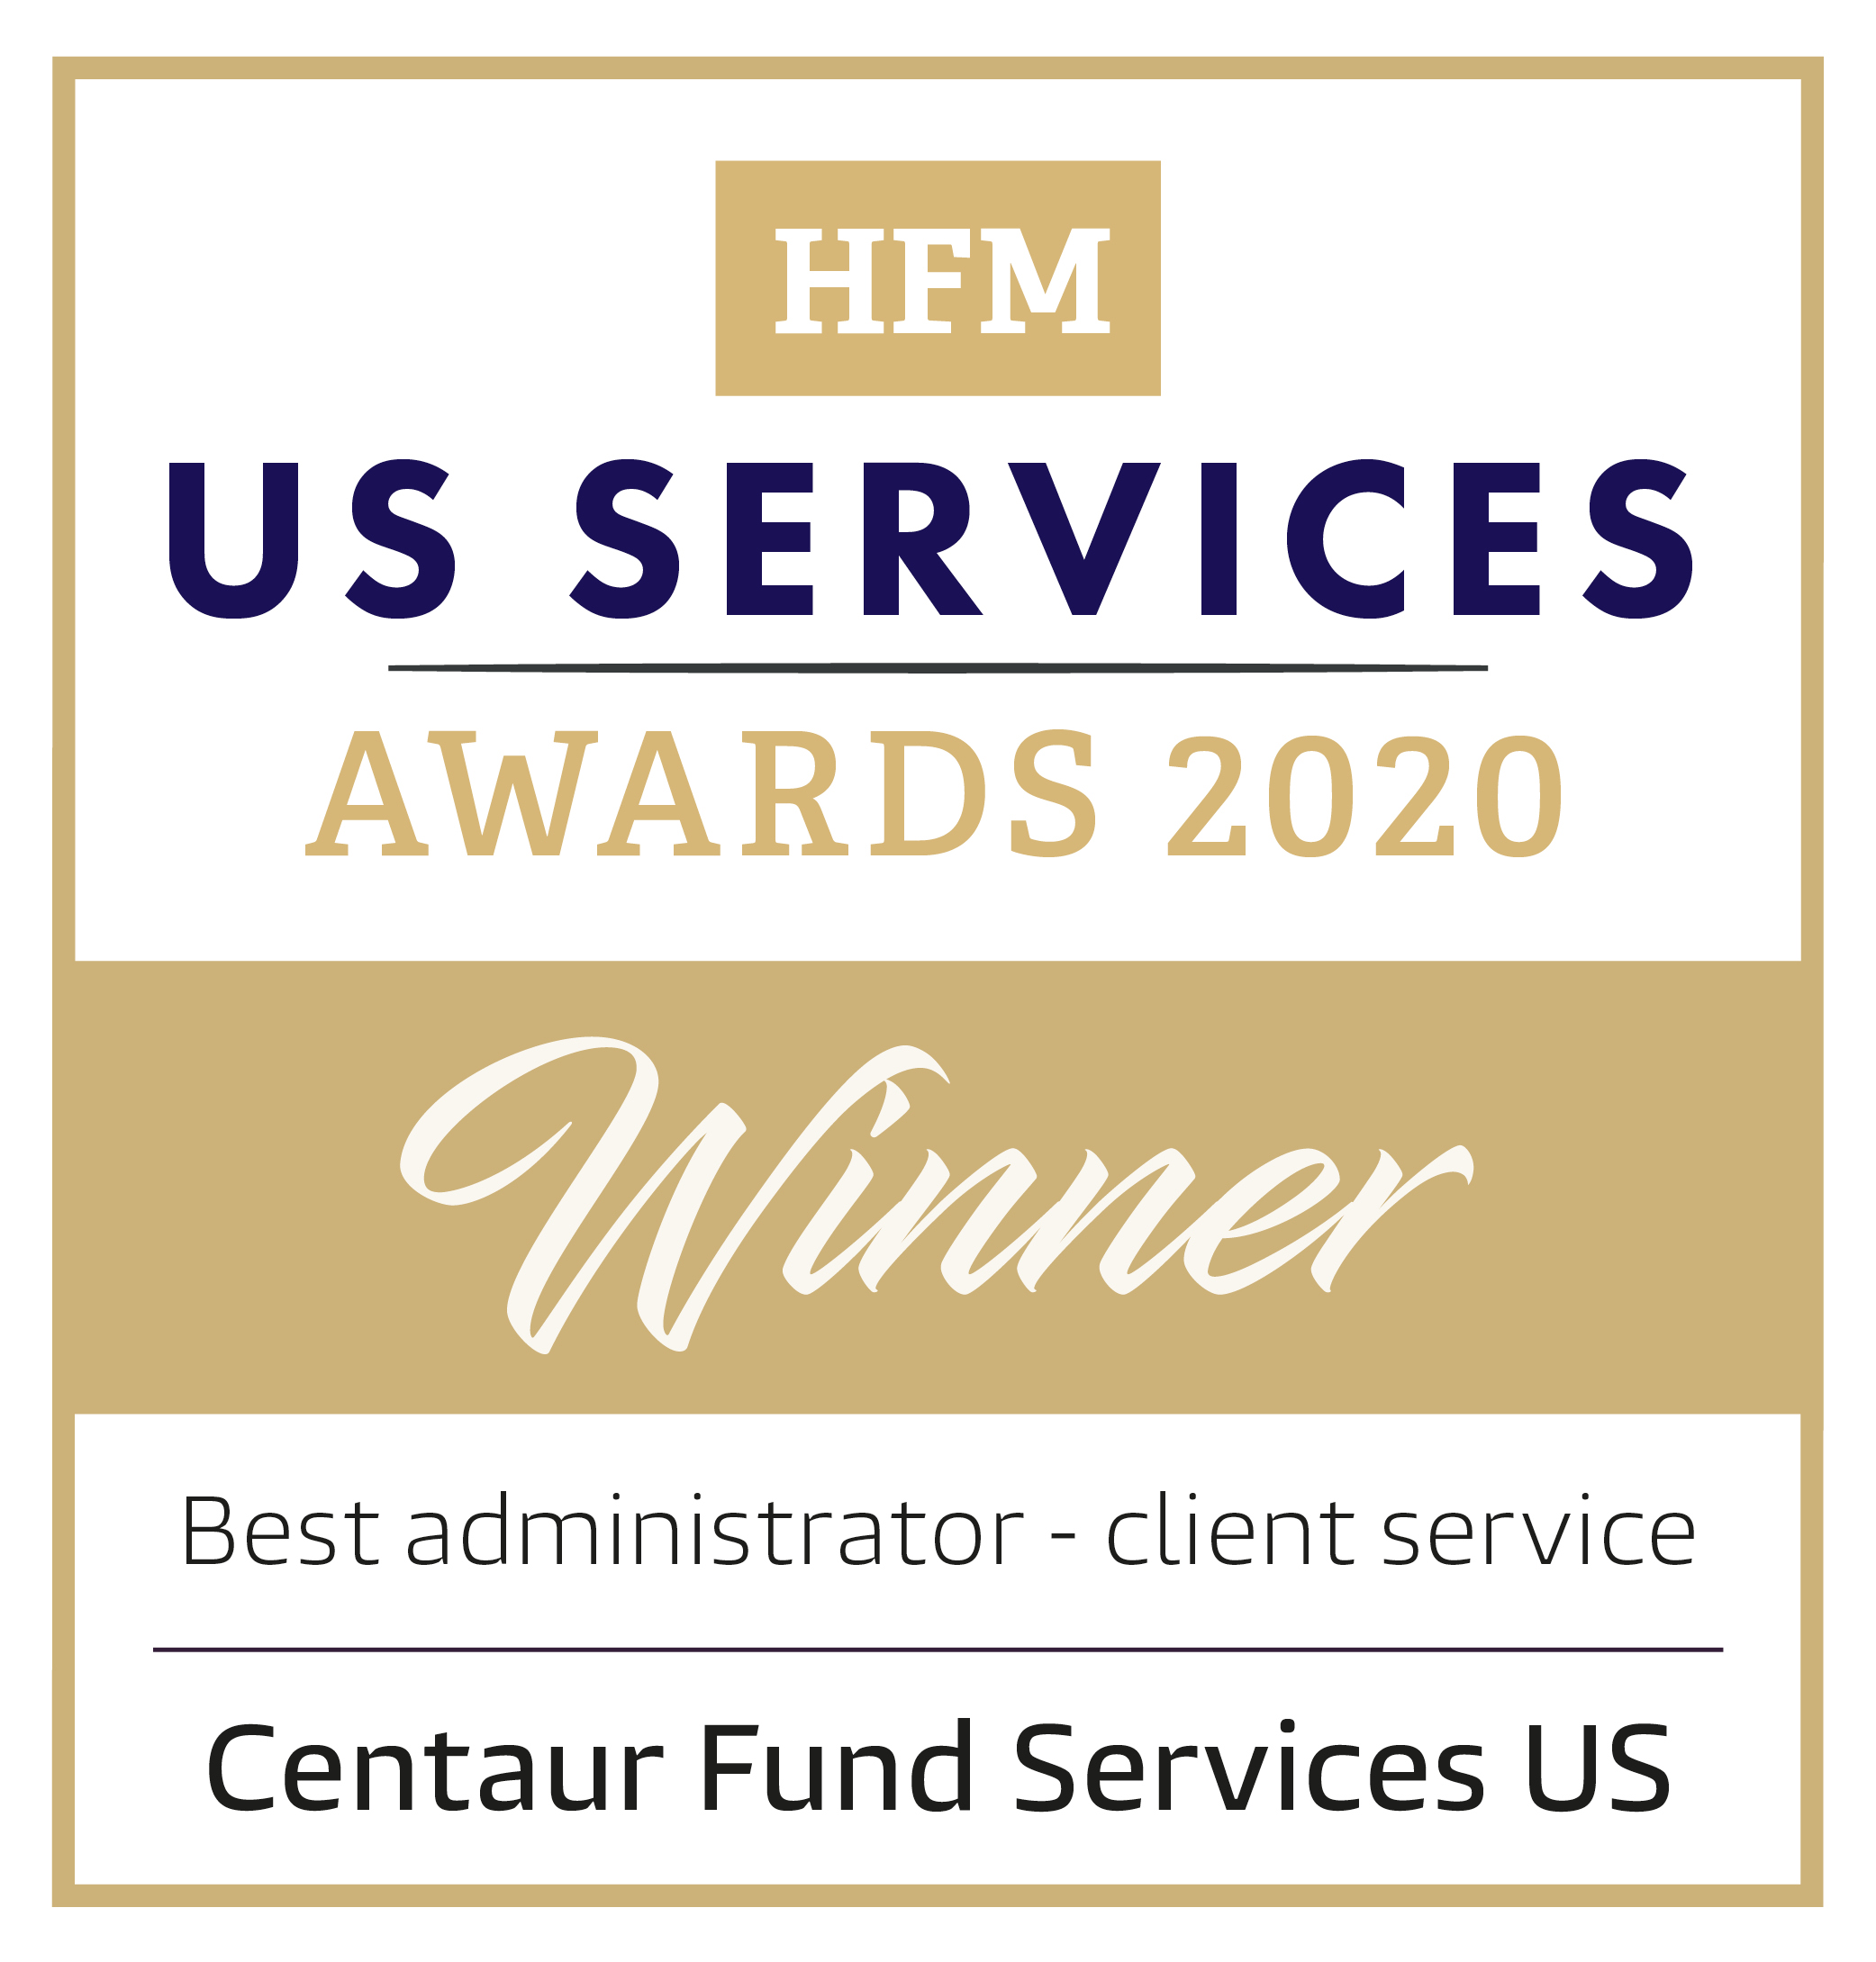 HFM US Services Awards 2020